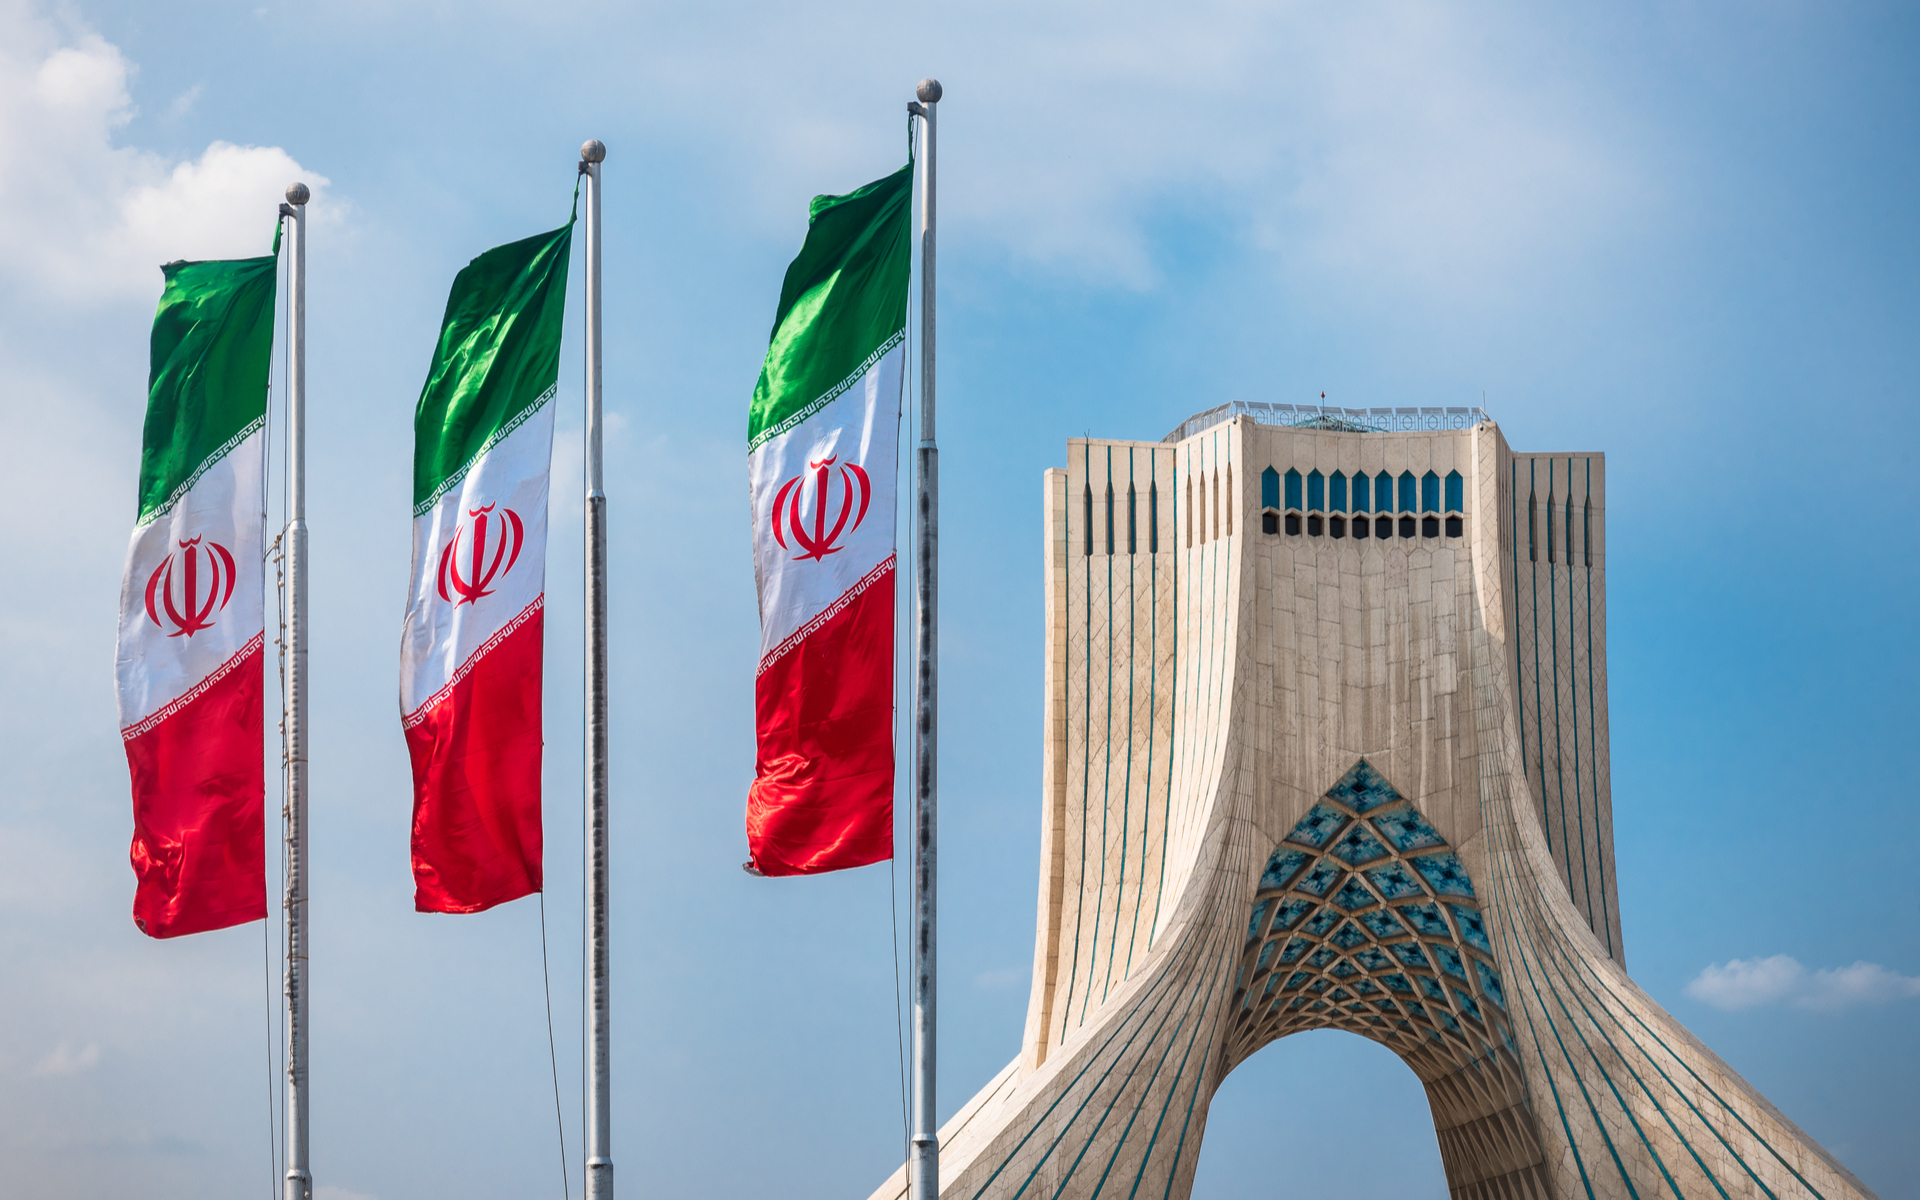 Tomorrow Iran may present its own cryptocurrency